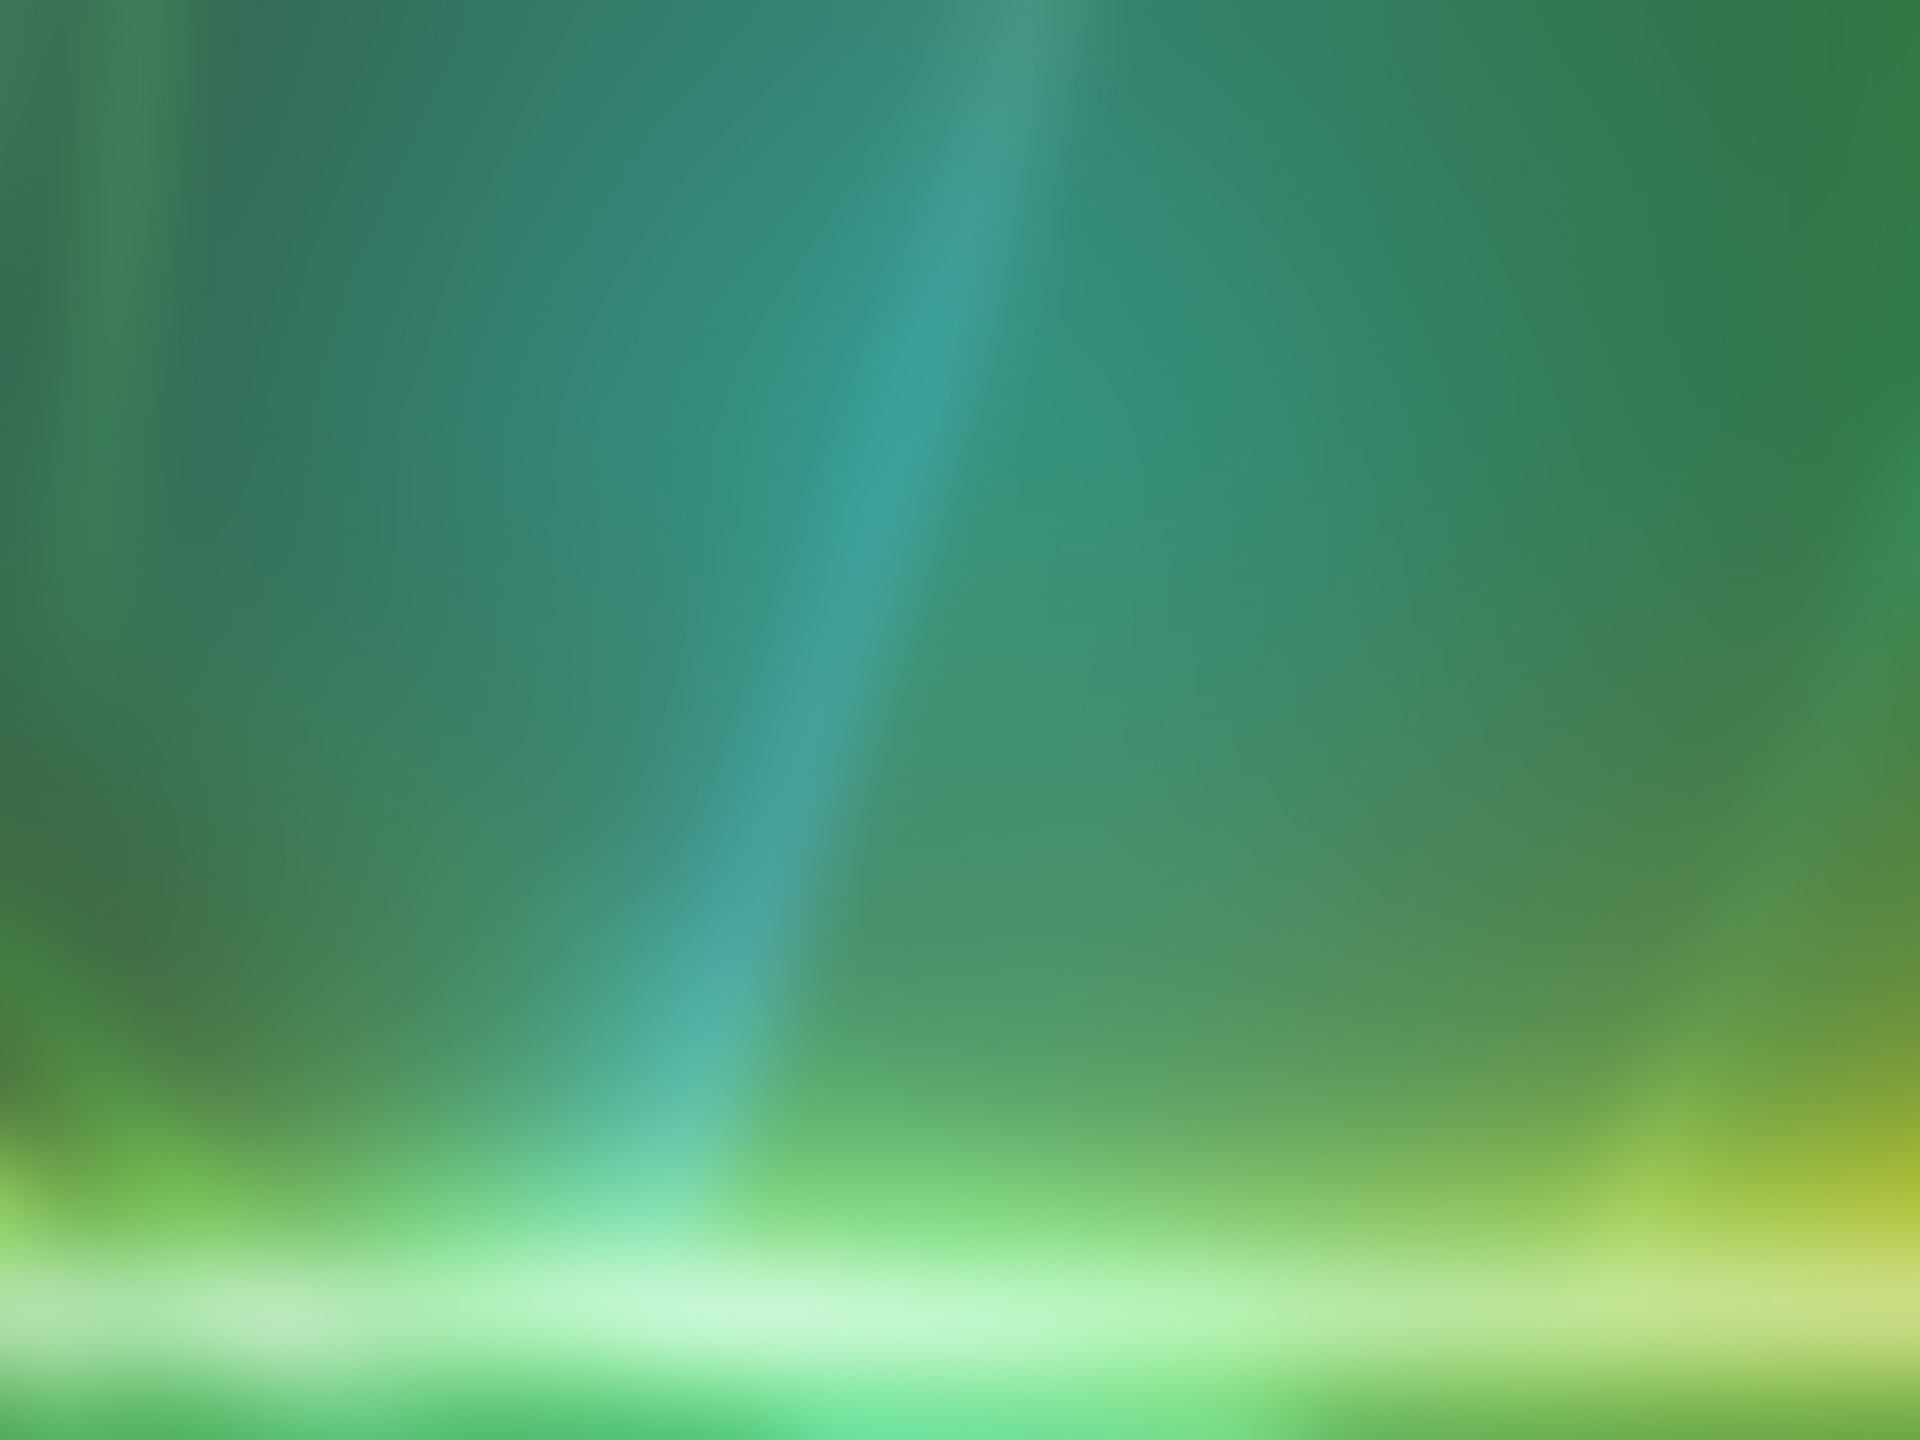 Green Windows 7 wallpaper